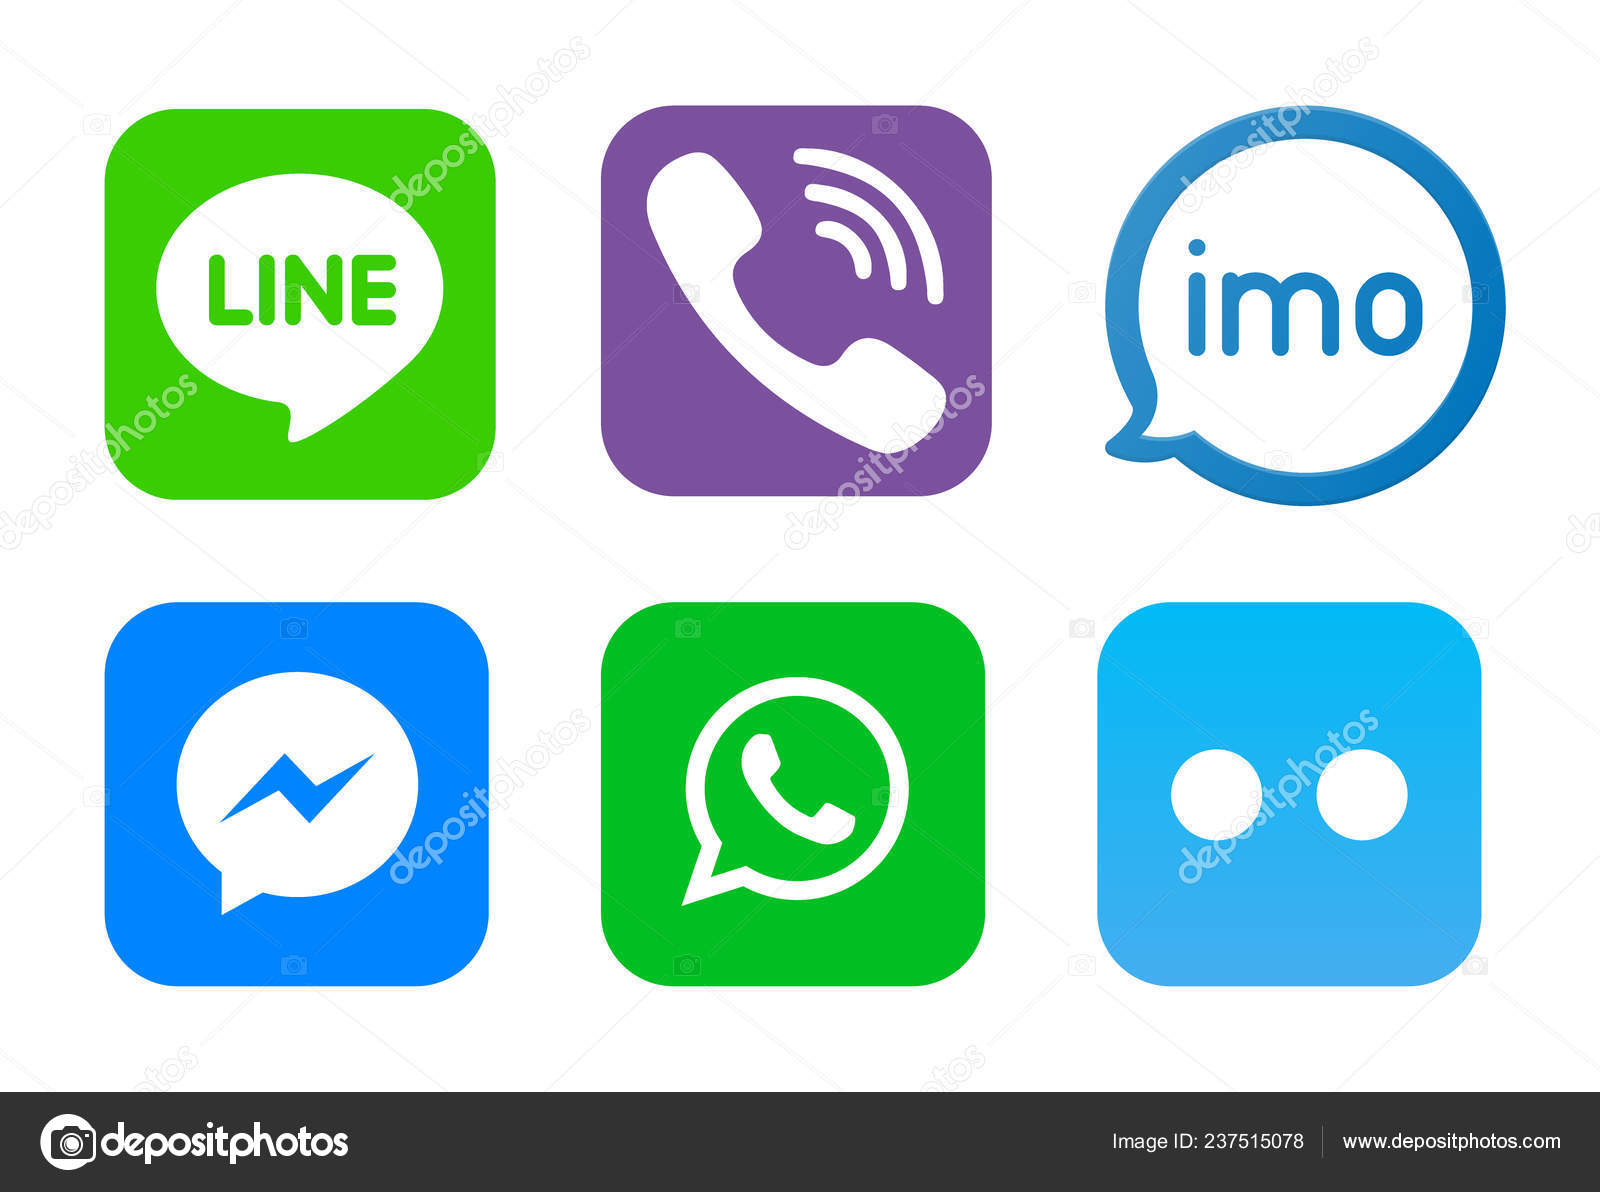 Like and Chat speech bubble sign  Line logo, Viber logo, imo